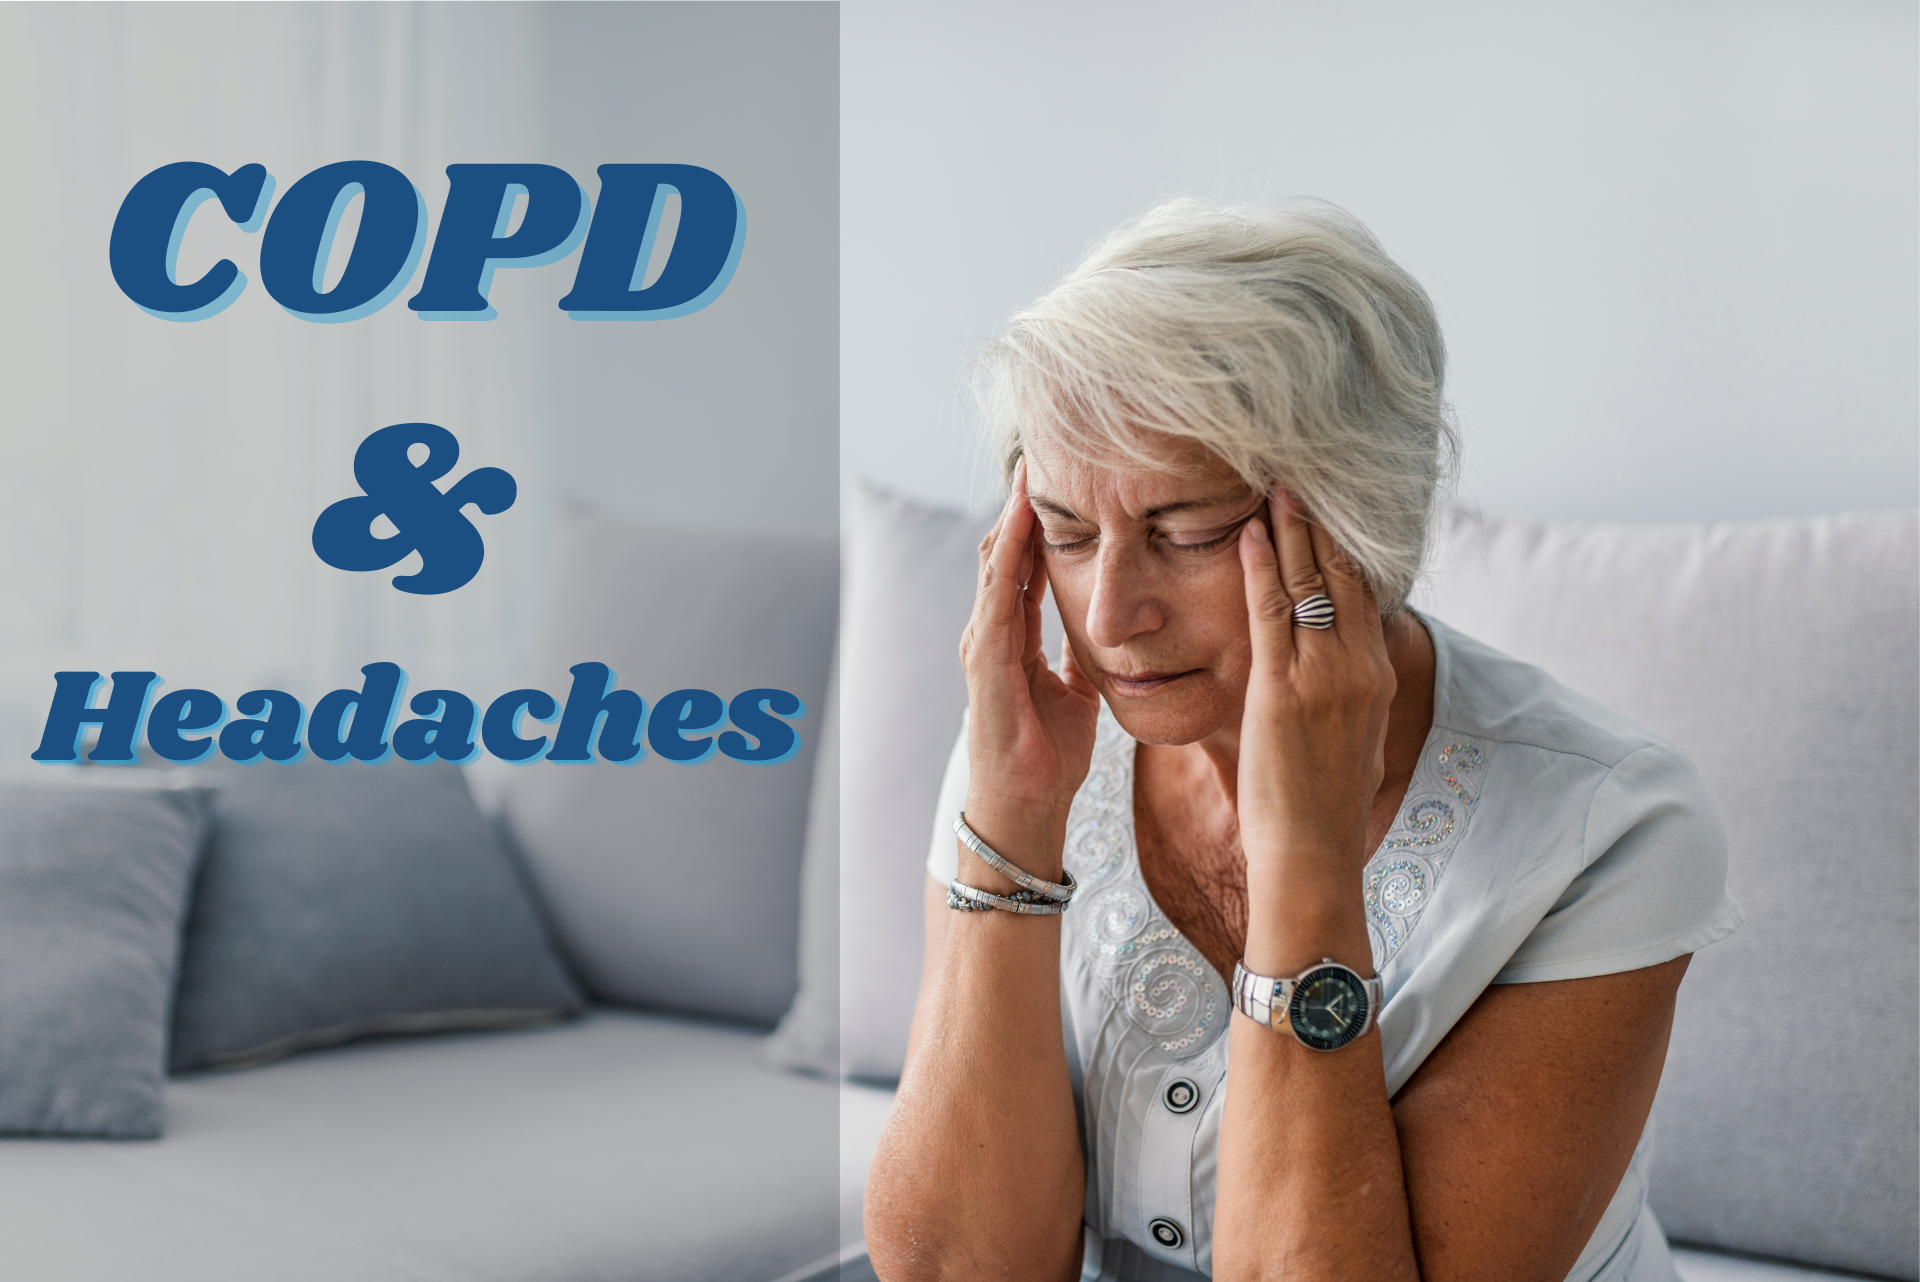 COPD & Headaches